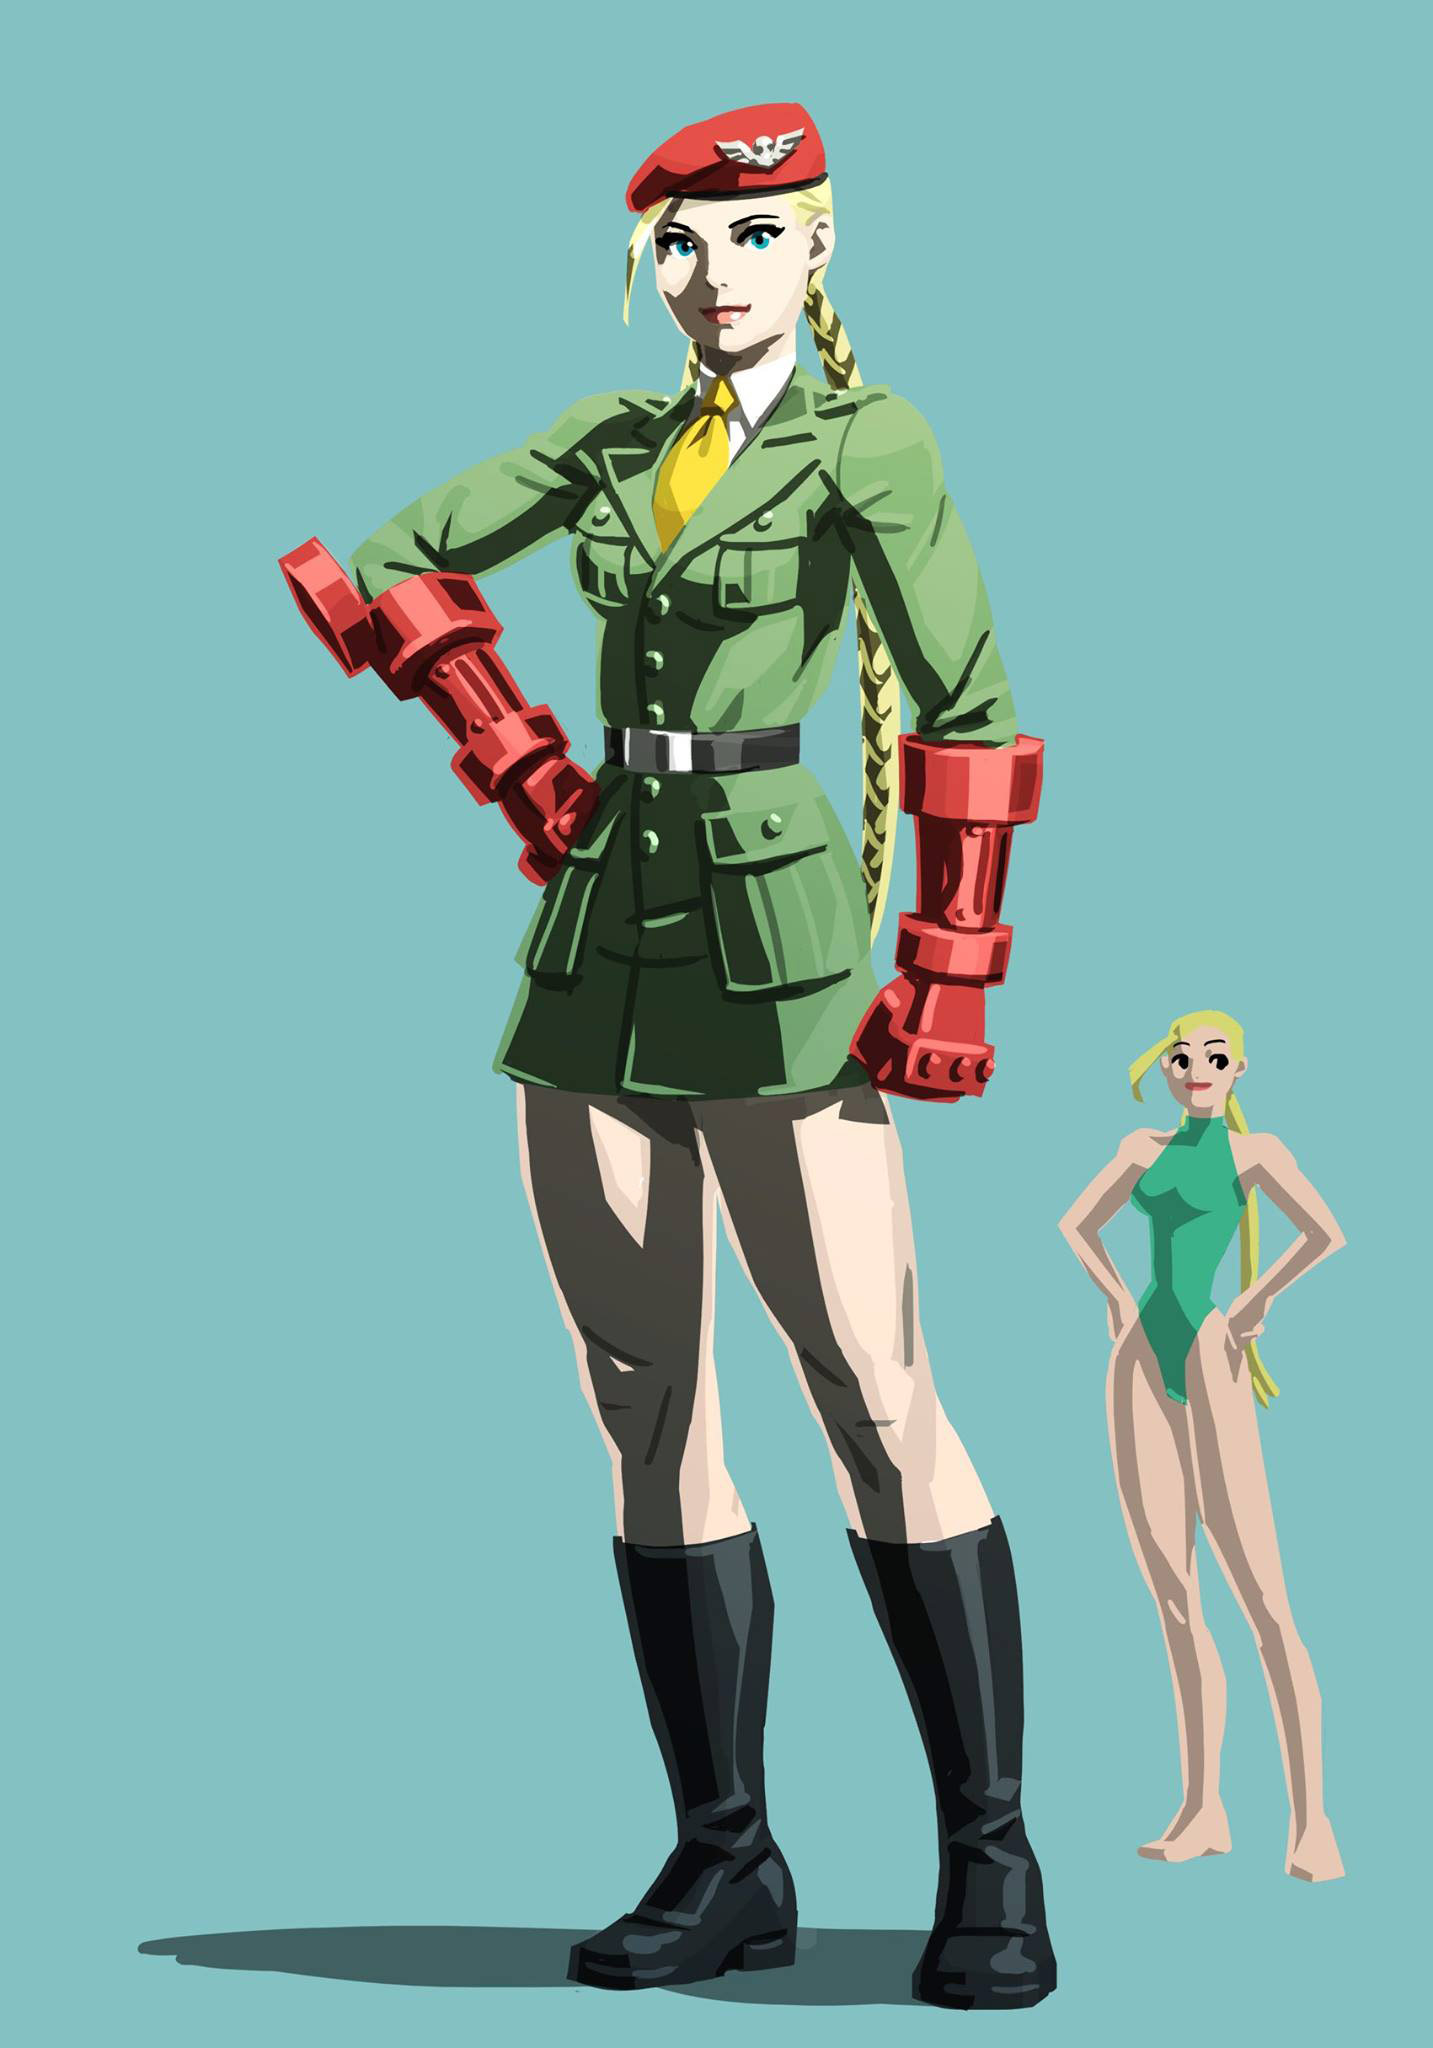 Street Fighter 5 story mode costume concept art 9 out of 13 image gallery